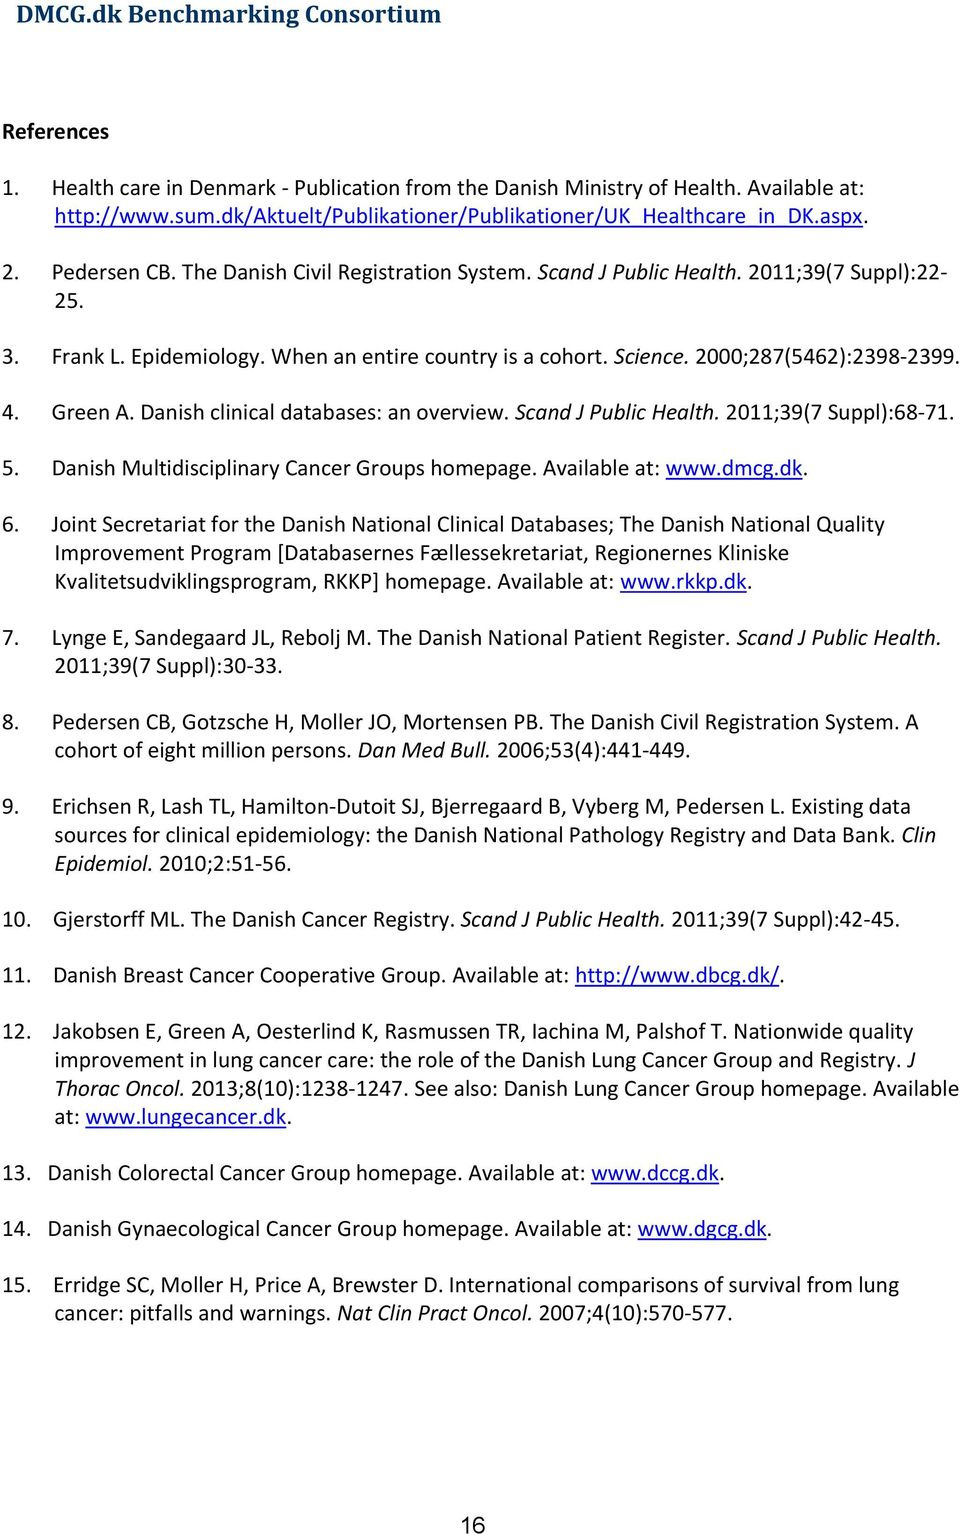 When an entire country is a cohort. Science. 2000;287(5462):2398-2399. 4. Green A. Danish clinical databases: an overview. Scand J Public Health. 2011;39(7 Suppl):68-71. 5.